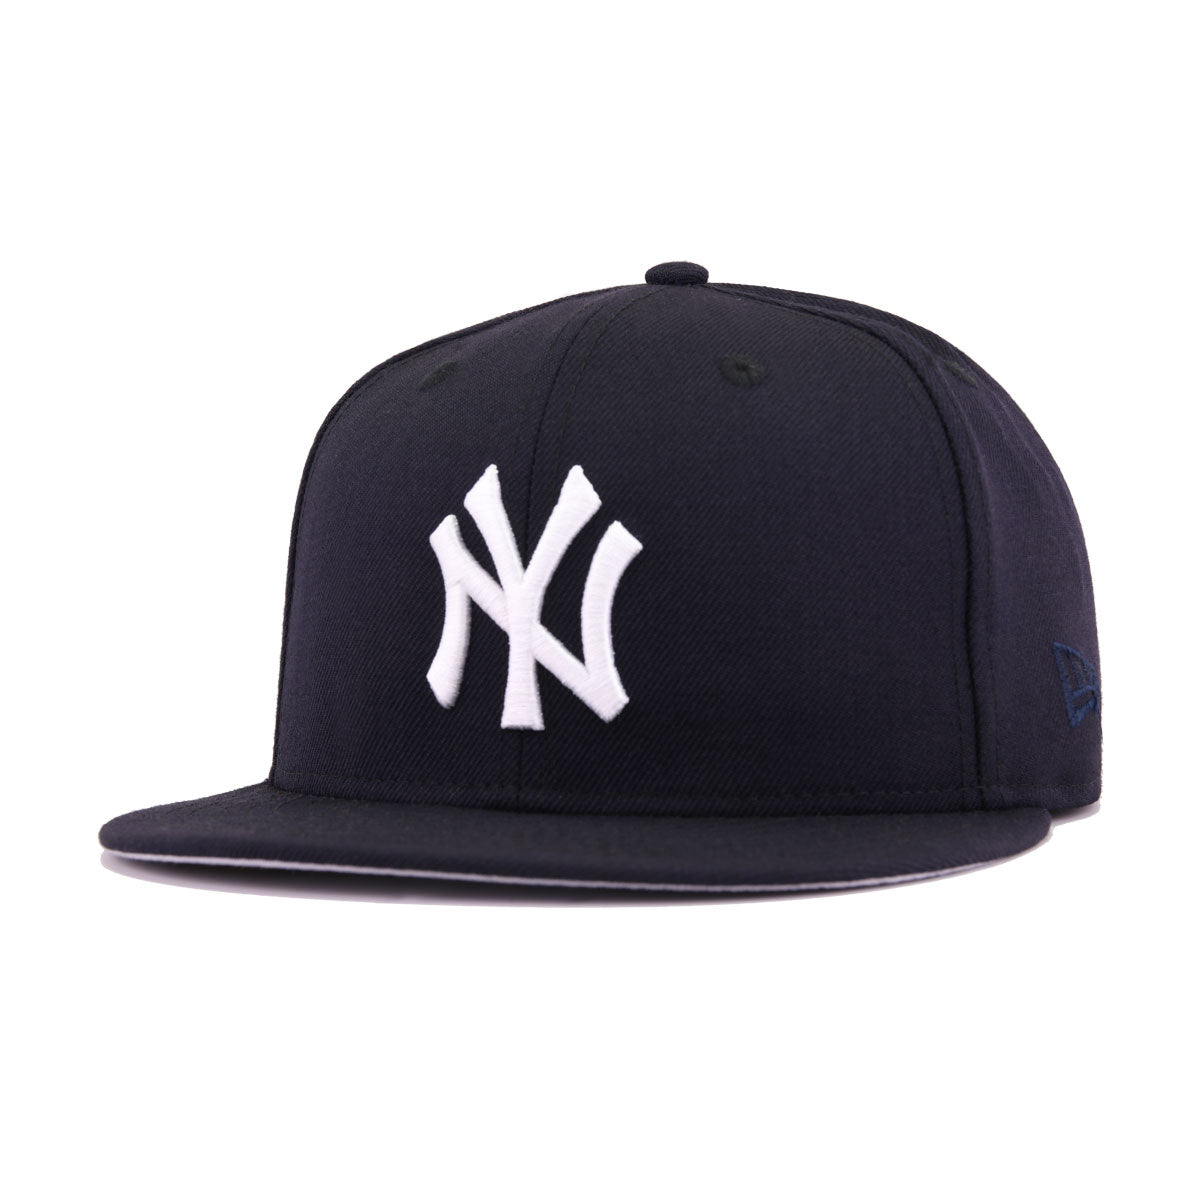 New York Yankees Navy 2008 All Star Game New Era 59Fifty Fitted